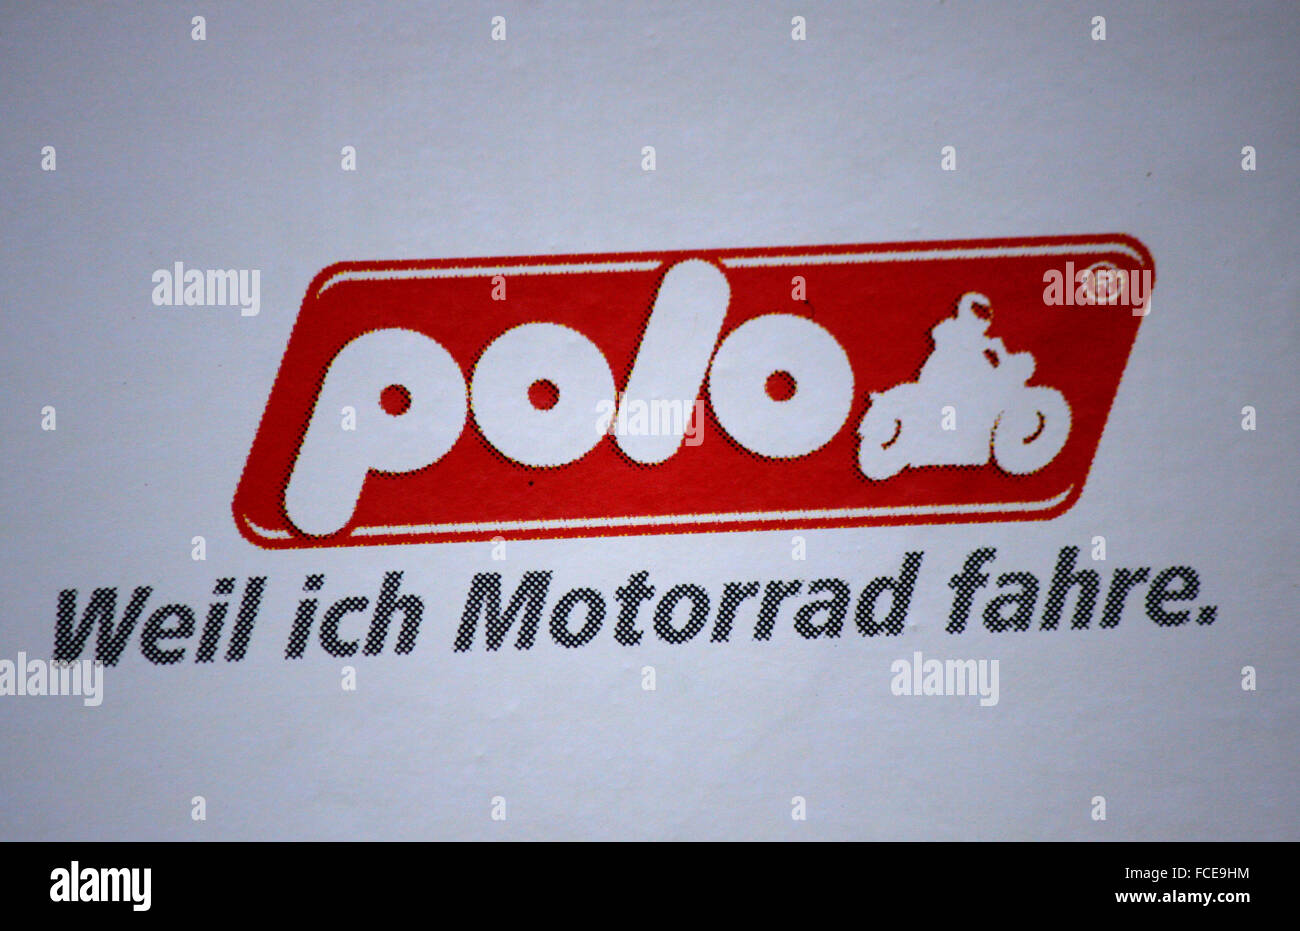 Markenname: 'Polo', Berlin. - Stock Image